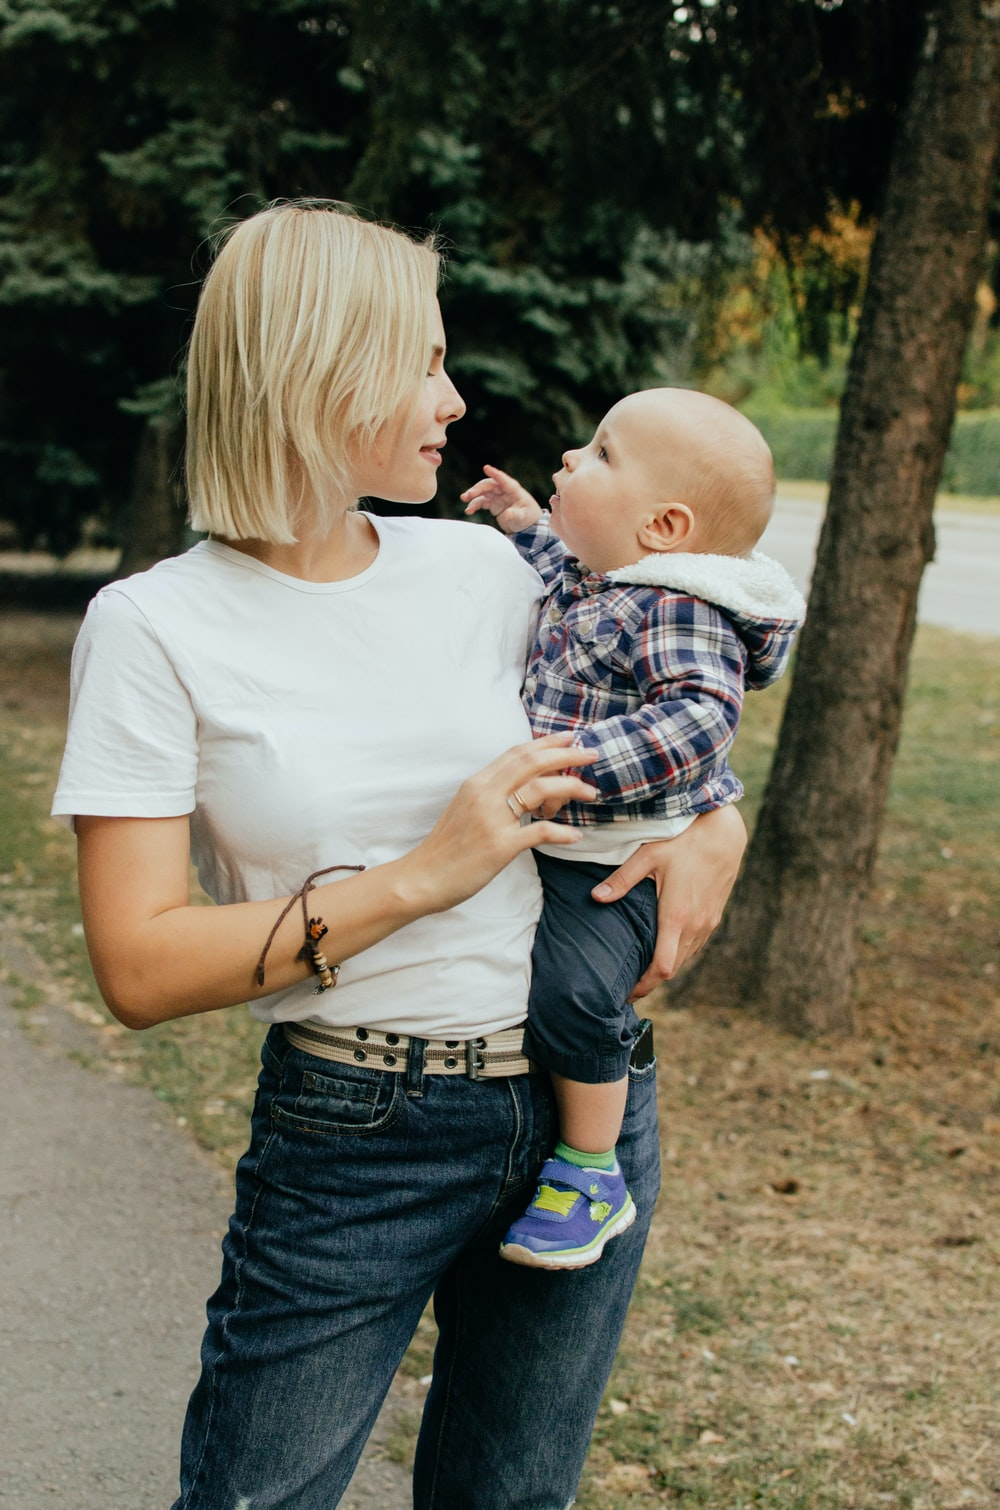 woman in white shirt carrying baby in blue and white plaid shirt